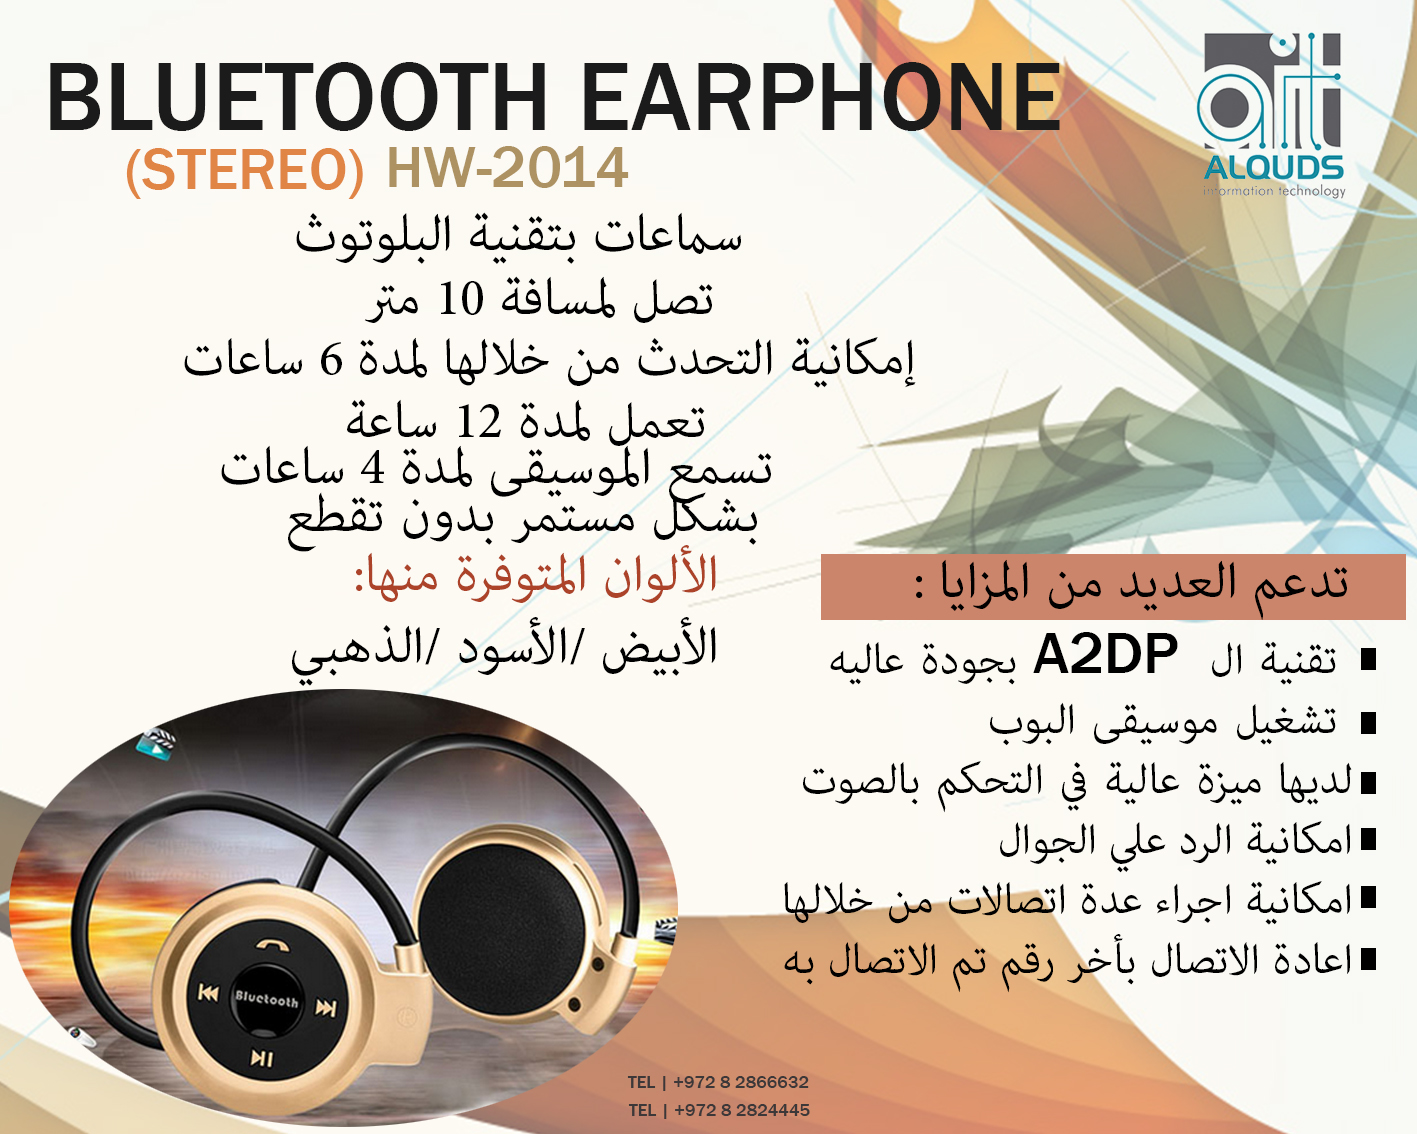 BLUETOOTH EARPHONE    HW-2014